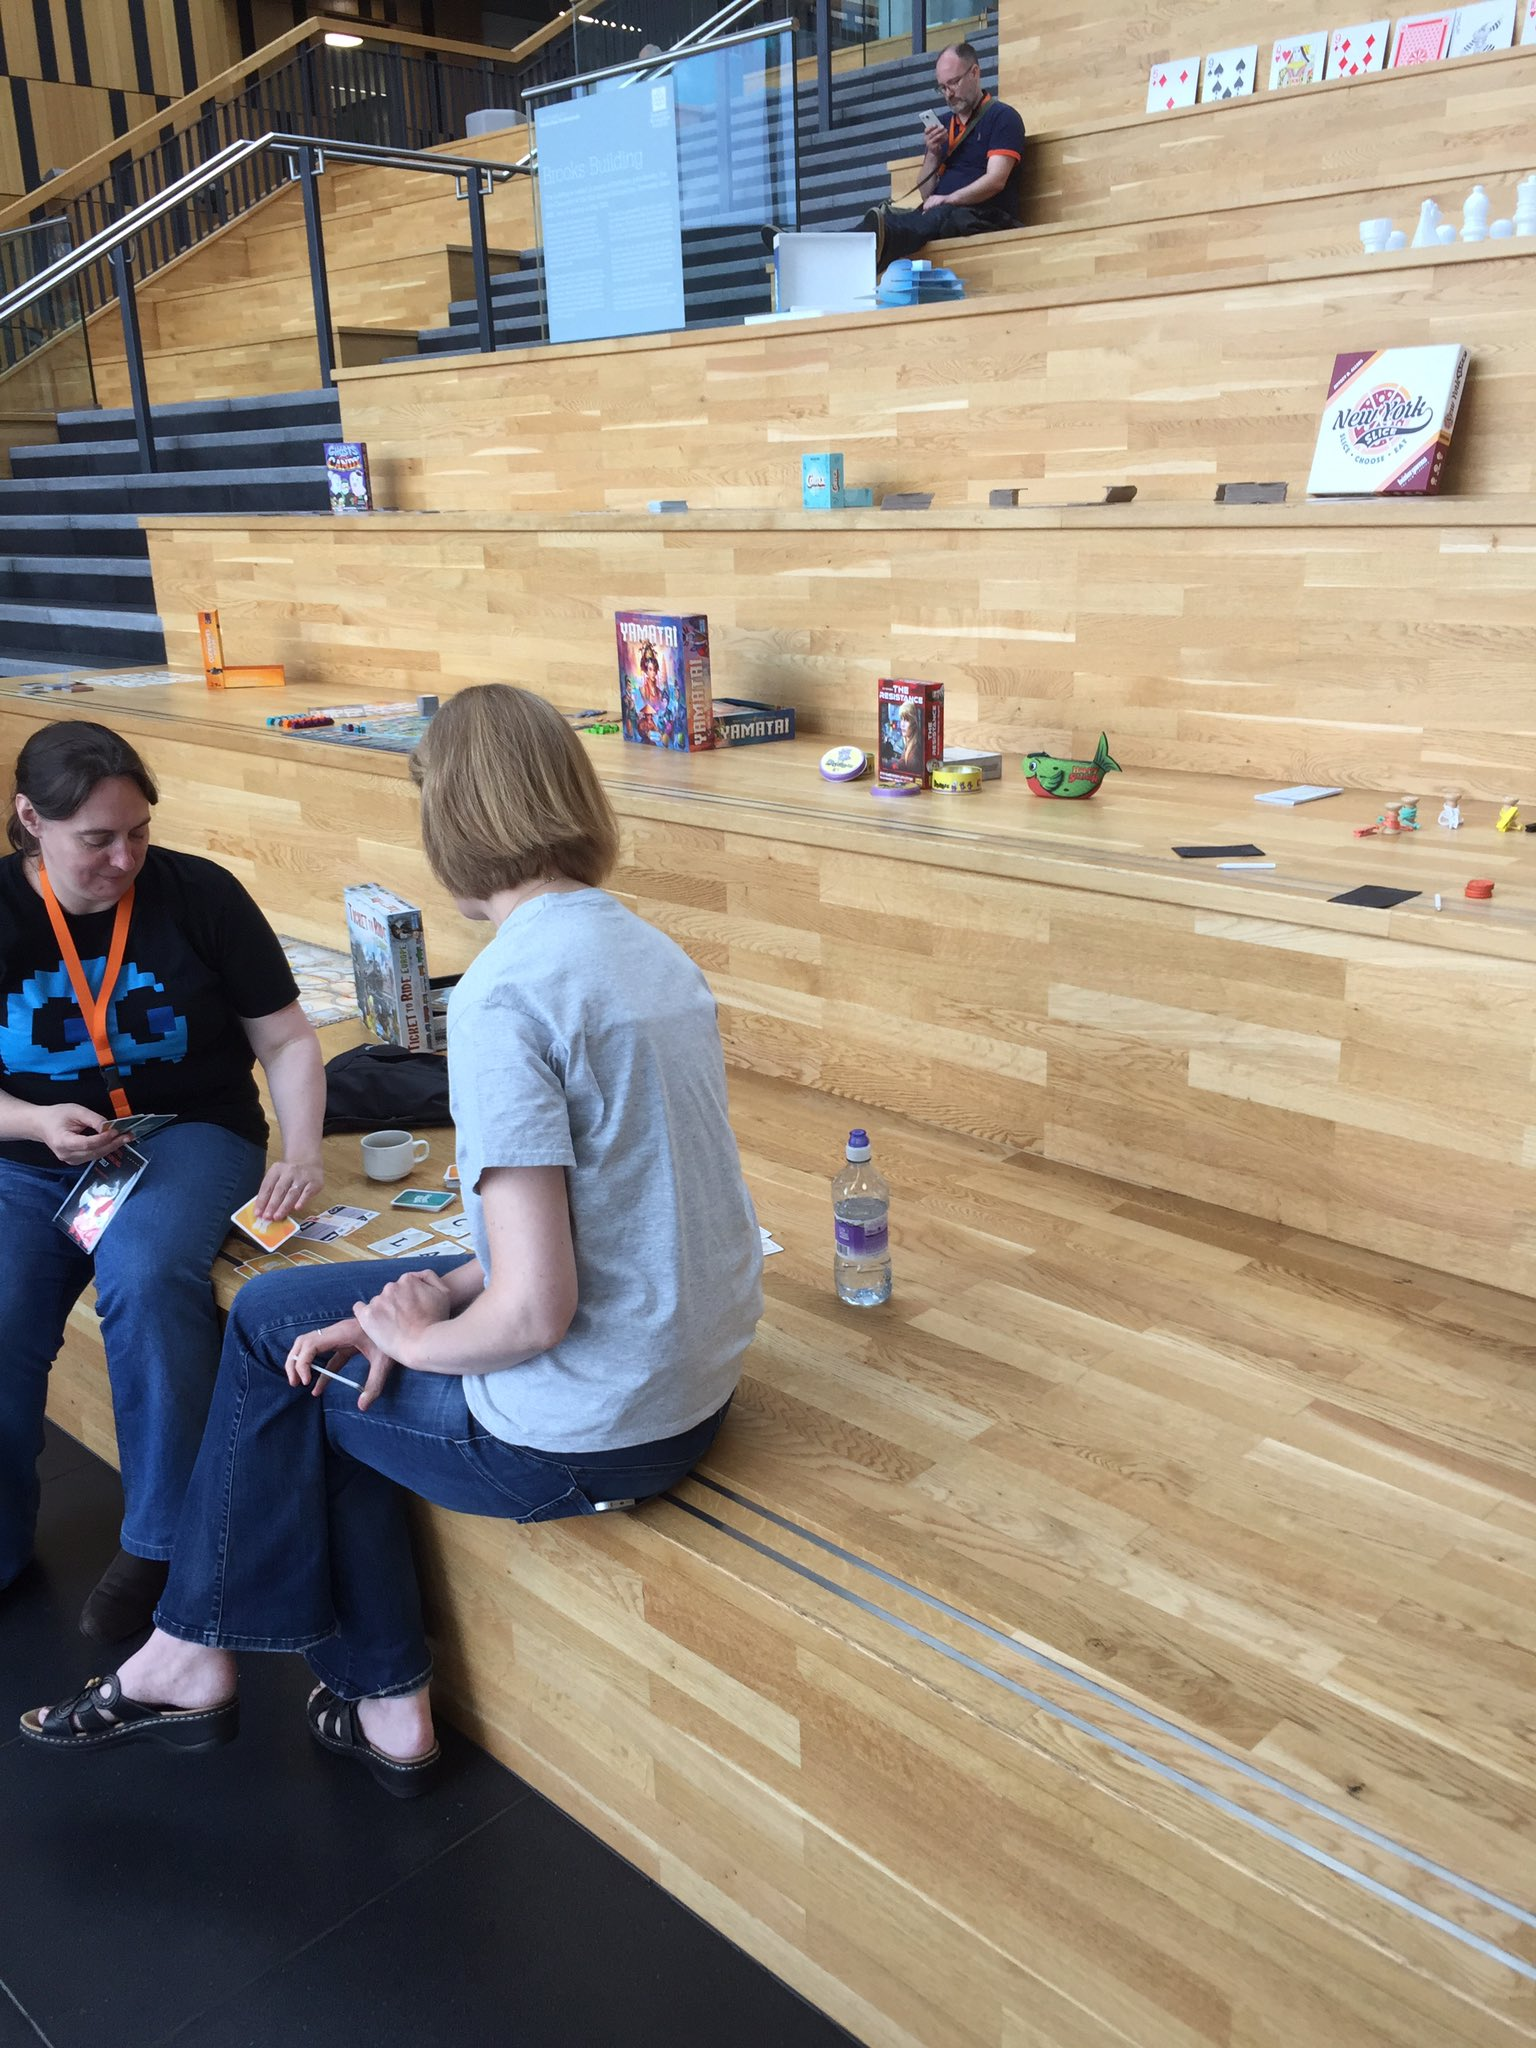 Board game cafe is open :) #playlearn17 https://t.co/n4EuSisfMR